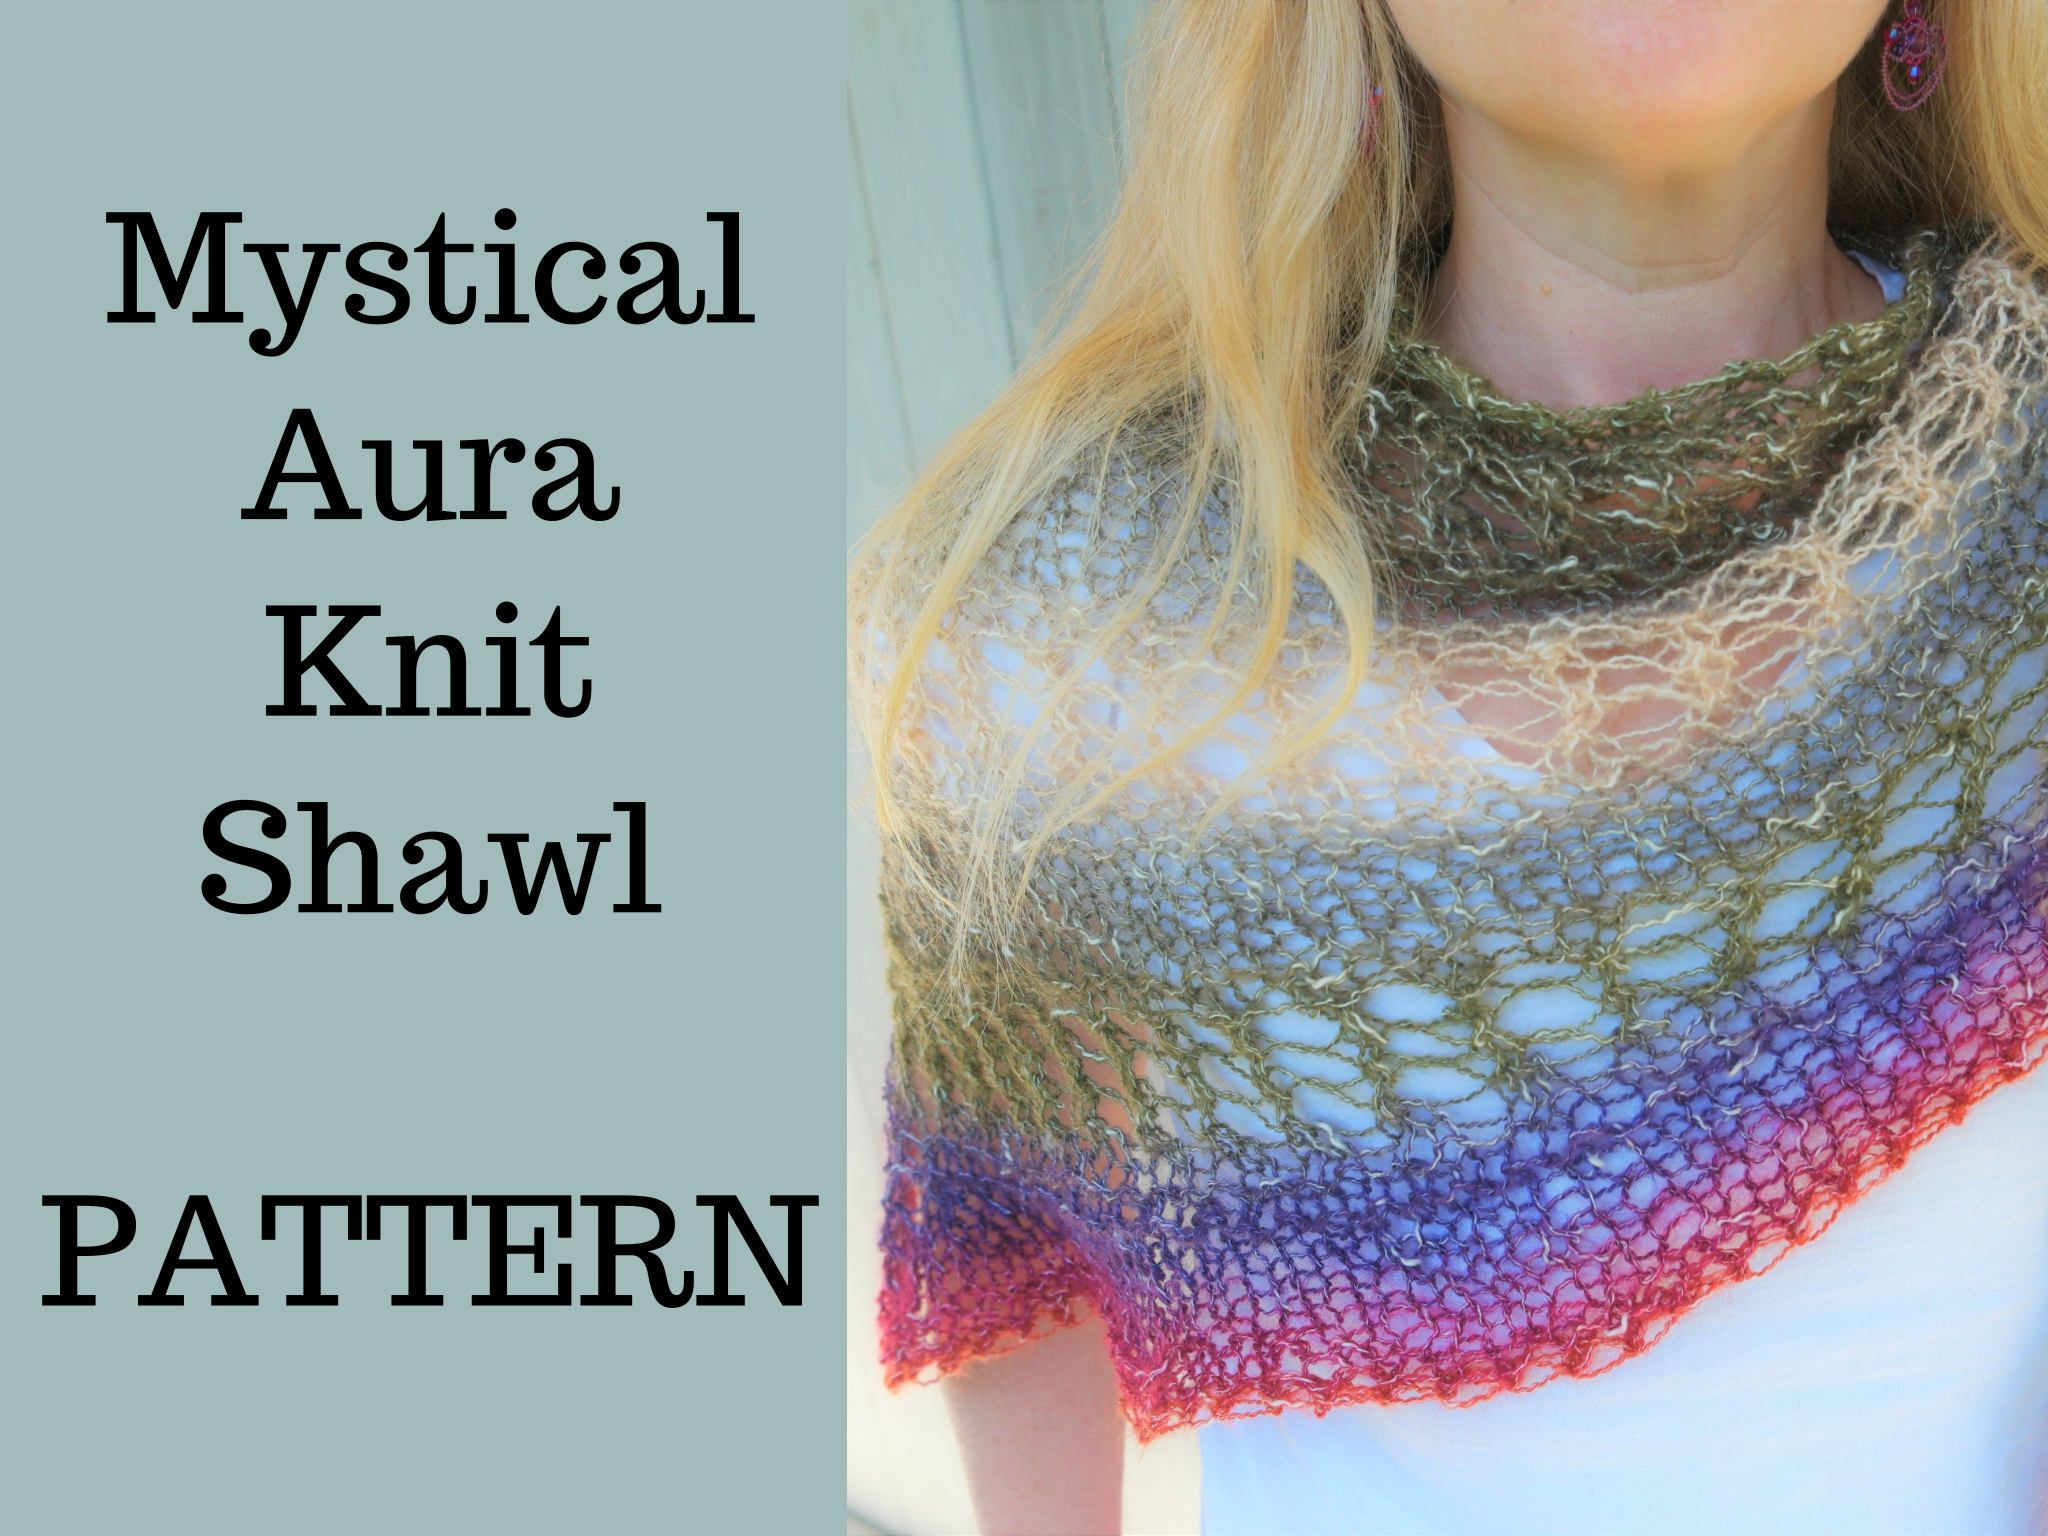 PATTERN - Mystical Aura Knit Shawl - Easy Lace Shawl Pattern by LightandJoyDesigns on Etsy